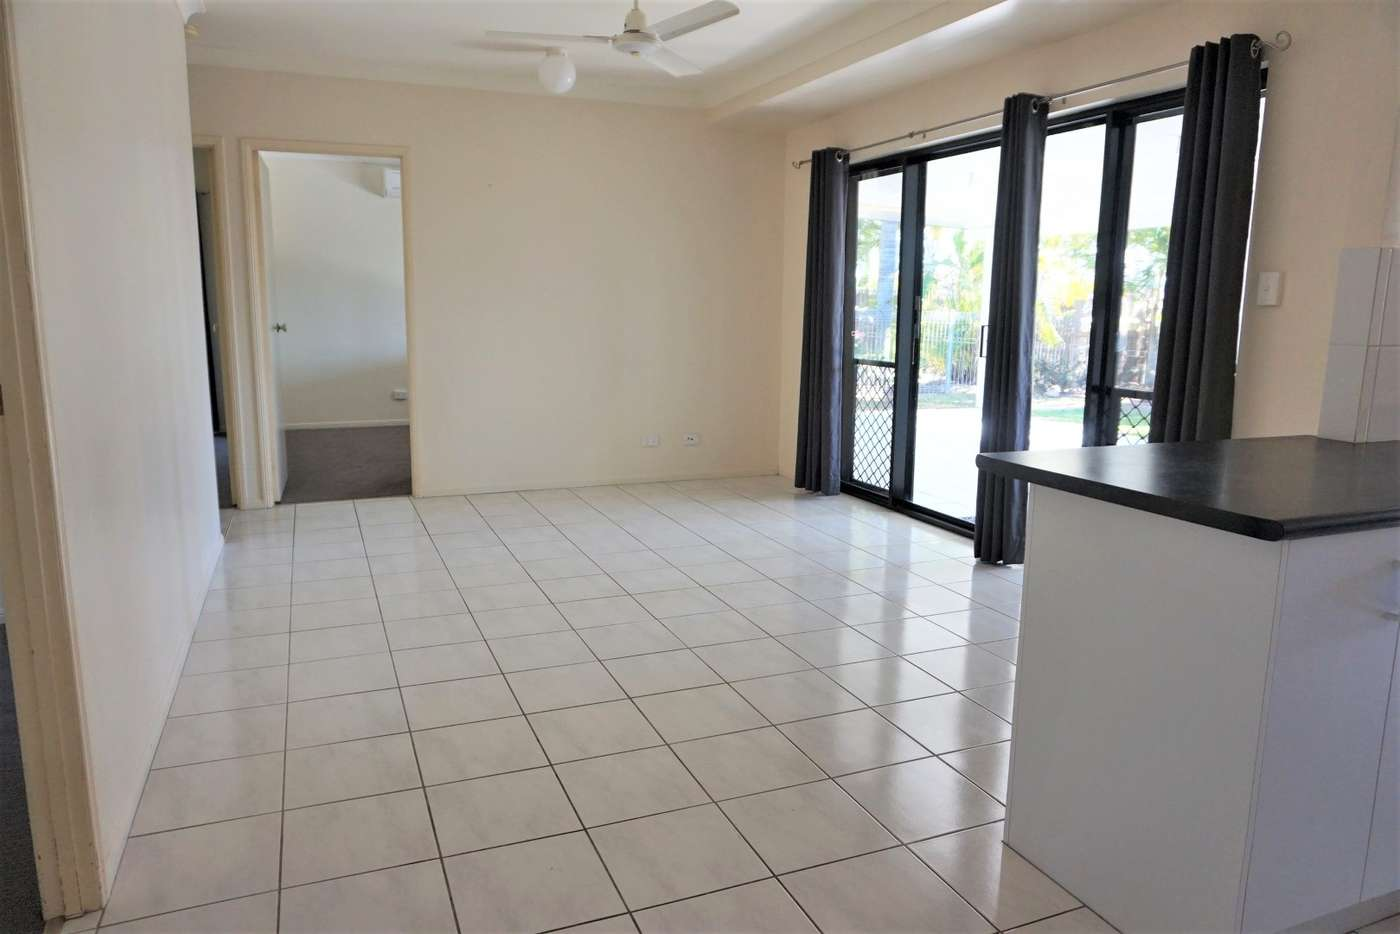 Sixth view of Homely house listing, 465 Bedford Road, Andergrove QLD 4740